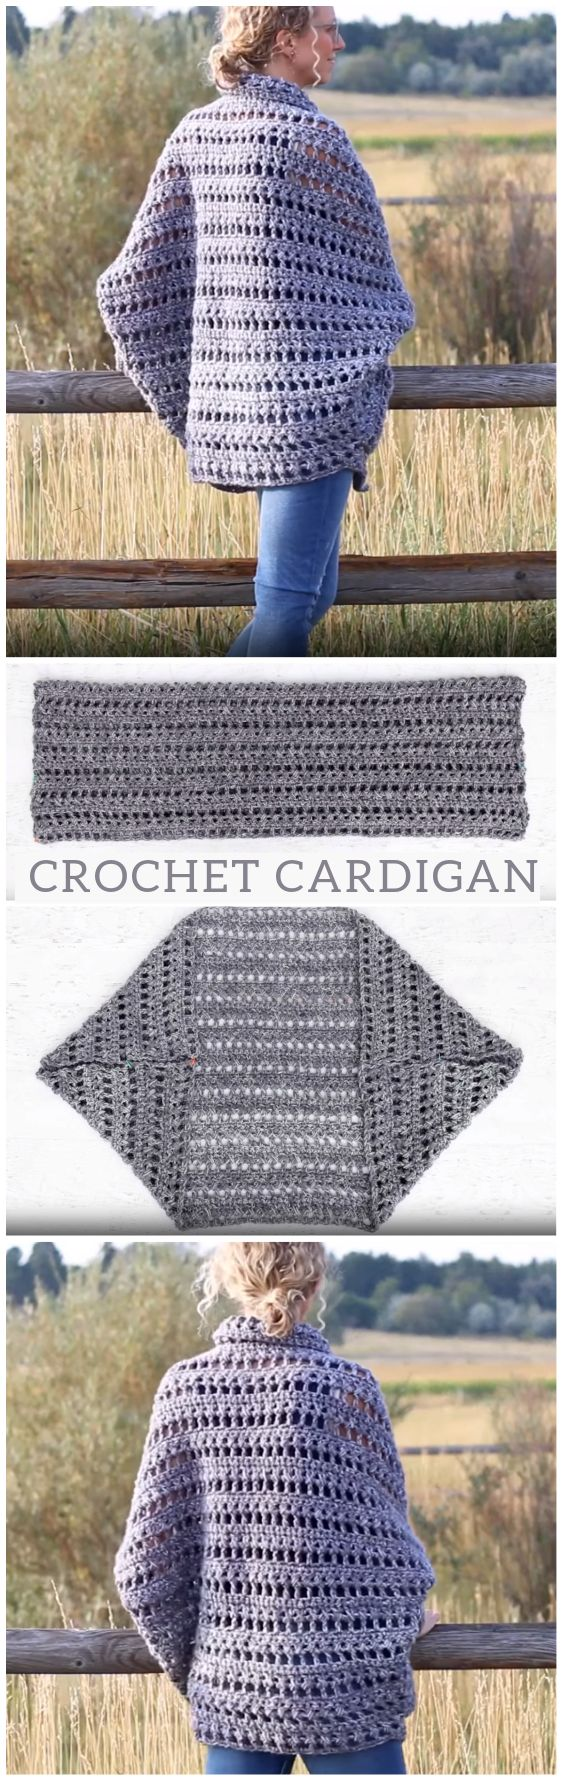 Crochet Patterns Crochet Patterns Crochet Cardigan Tutorial is one of the rarest free video tutorial available on the internet market. We share this step by step guided video tutorial absolutely free for our users. Skills needed include double crochet and post stitches, although if…Read More »